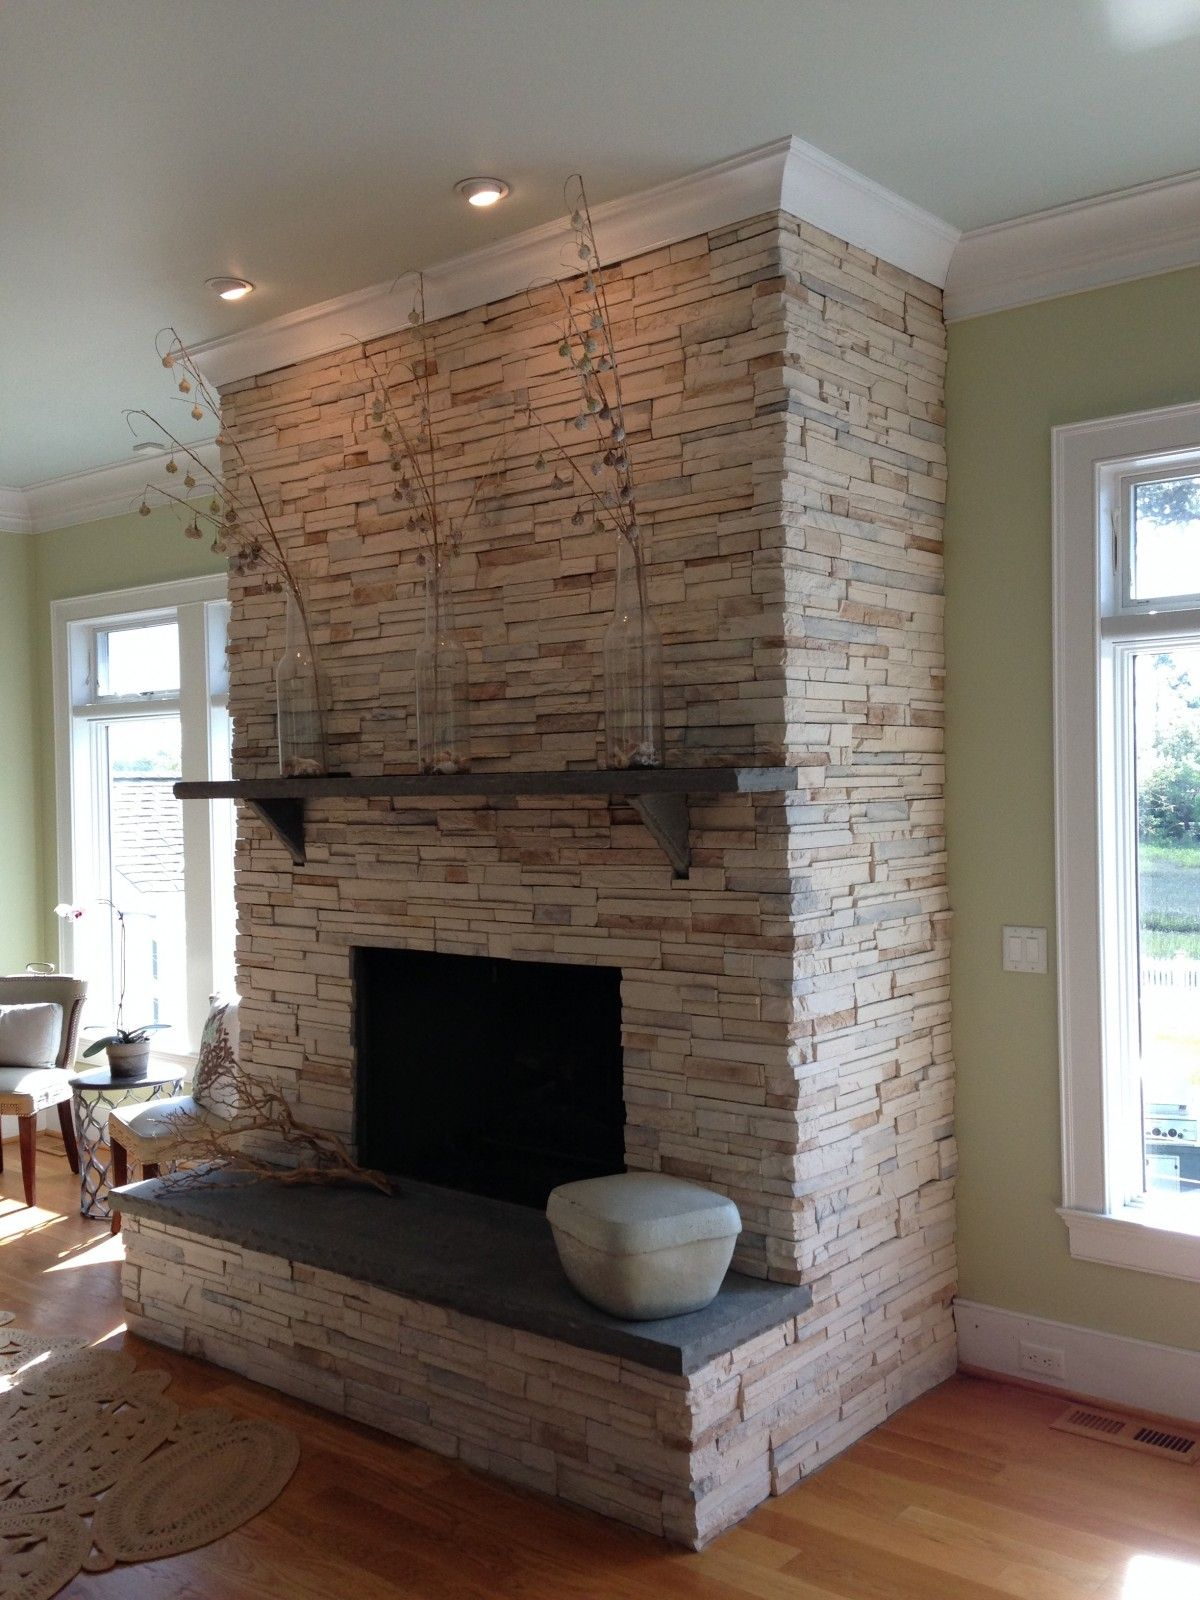 Resurfacing Fireplace With Stone Veneer Mycoffeepot Org